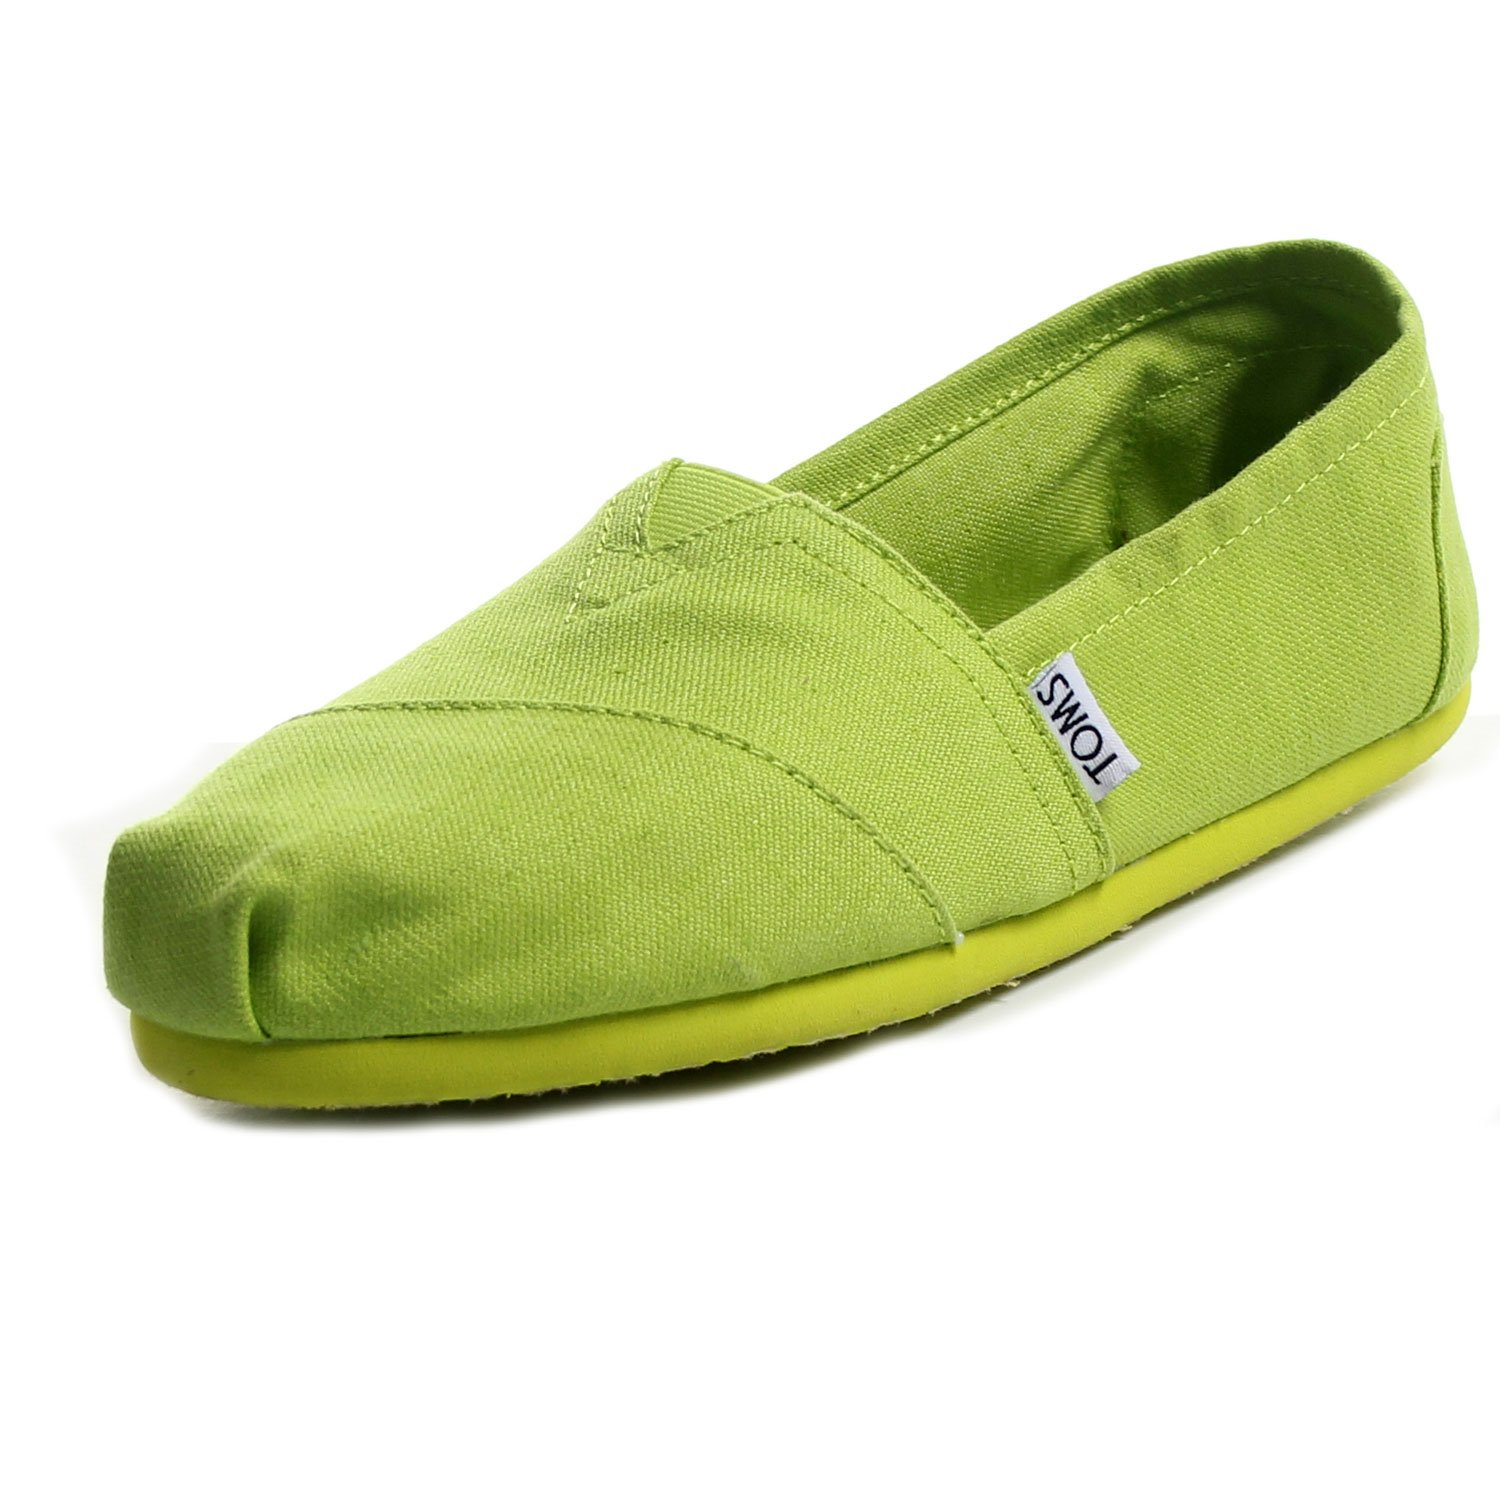 TOMS Womens Classics Shoe Lime Earthwise Size 8